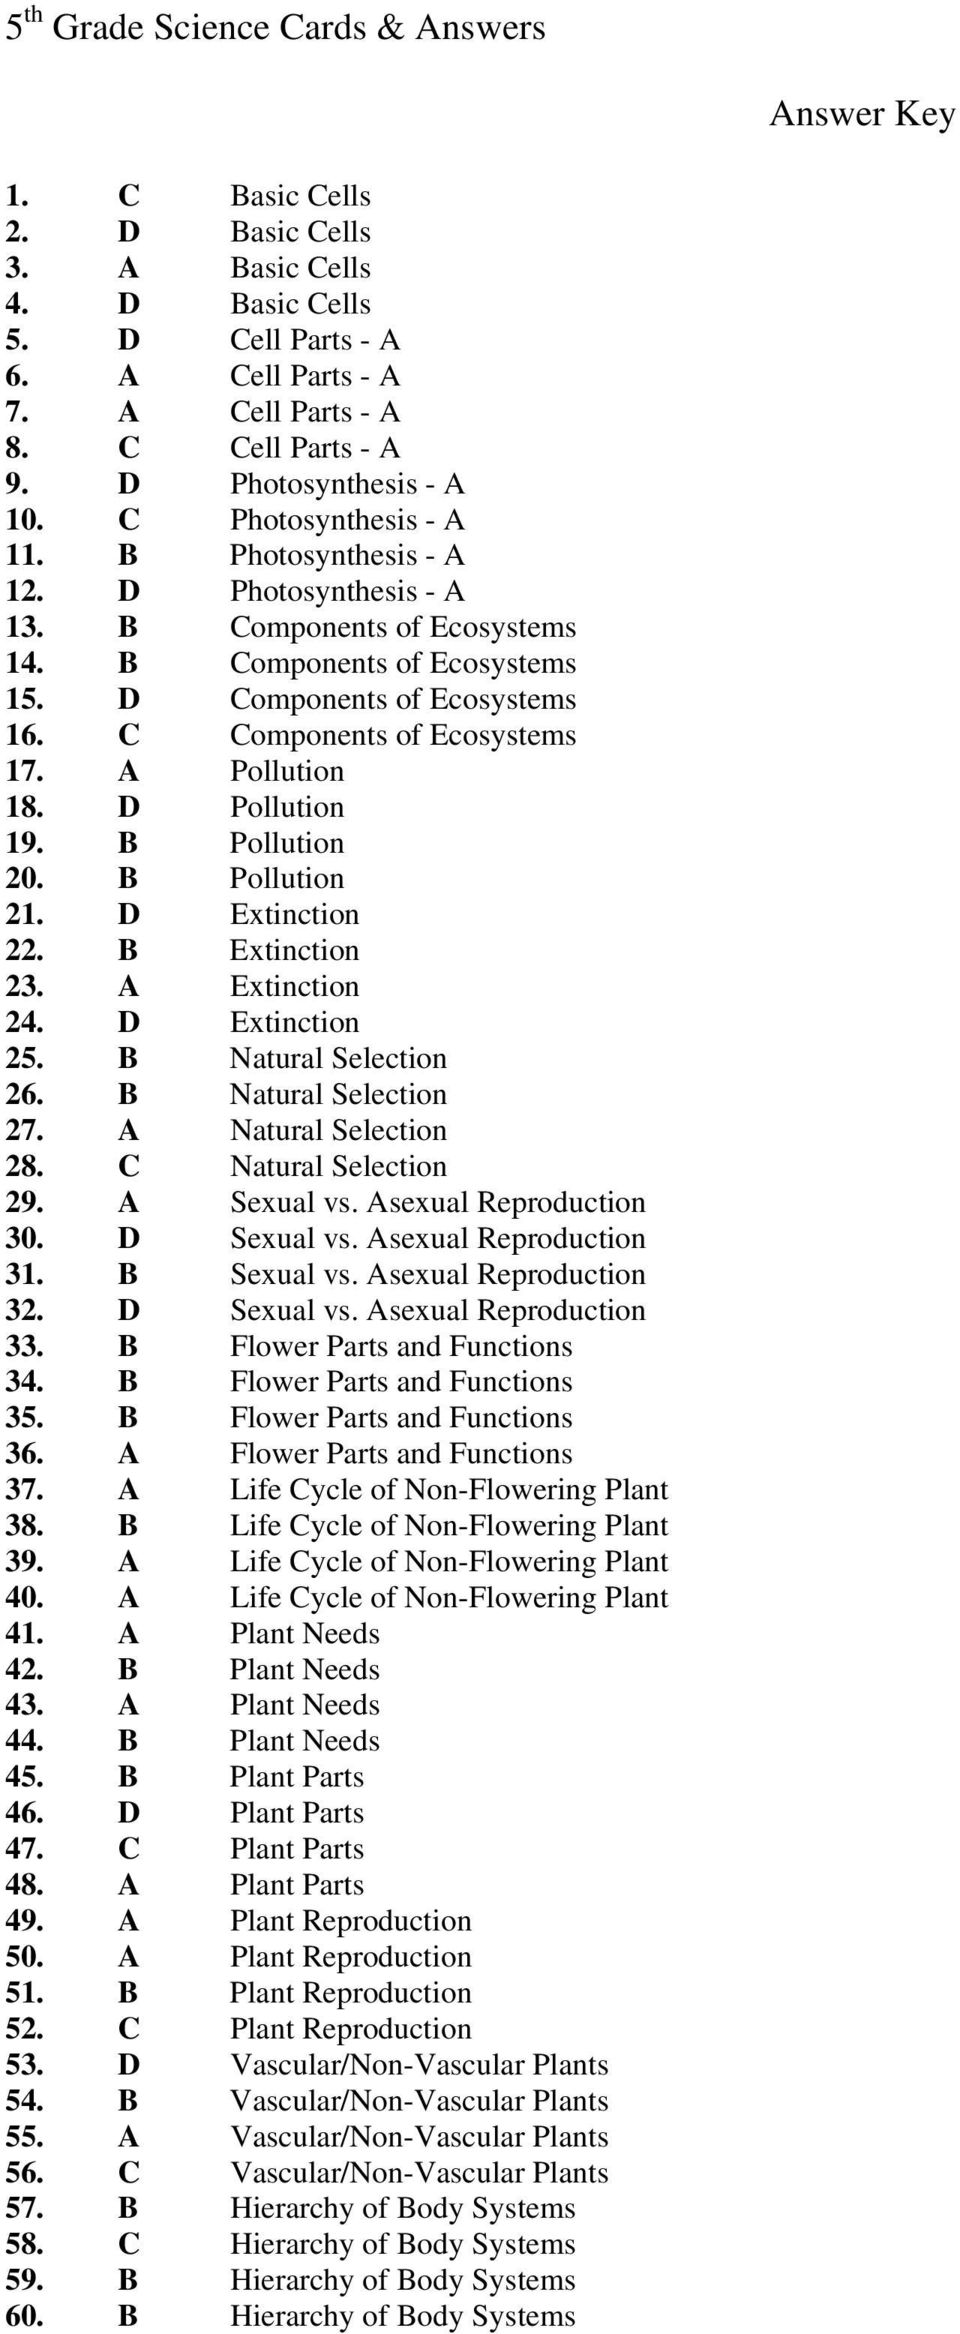 A Pollution 18. D Pollution 19. B Pollution 20. B Pollution 21. D Extinction 22. B Extinction 23. A Extinction 24. D Extinction 25. B Natural Selection 26. B Natural Selection 27.